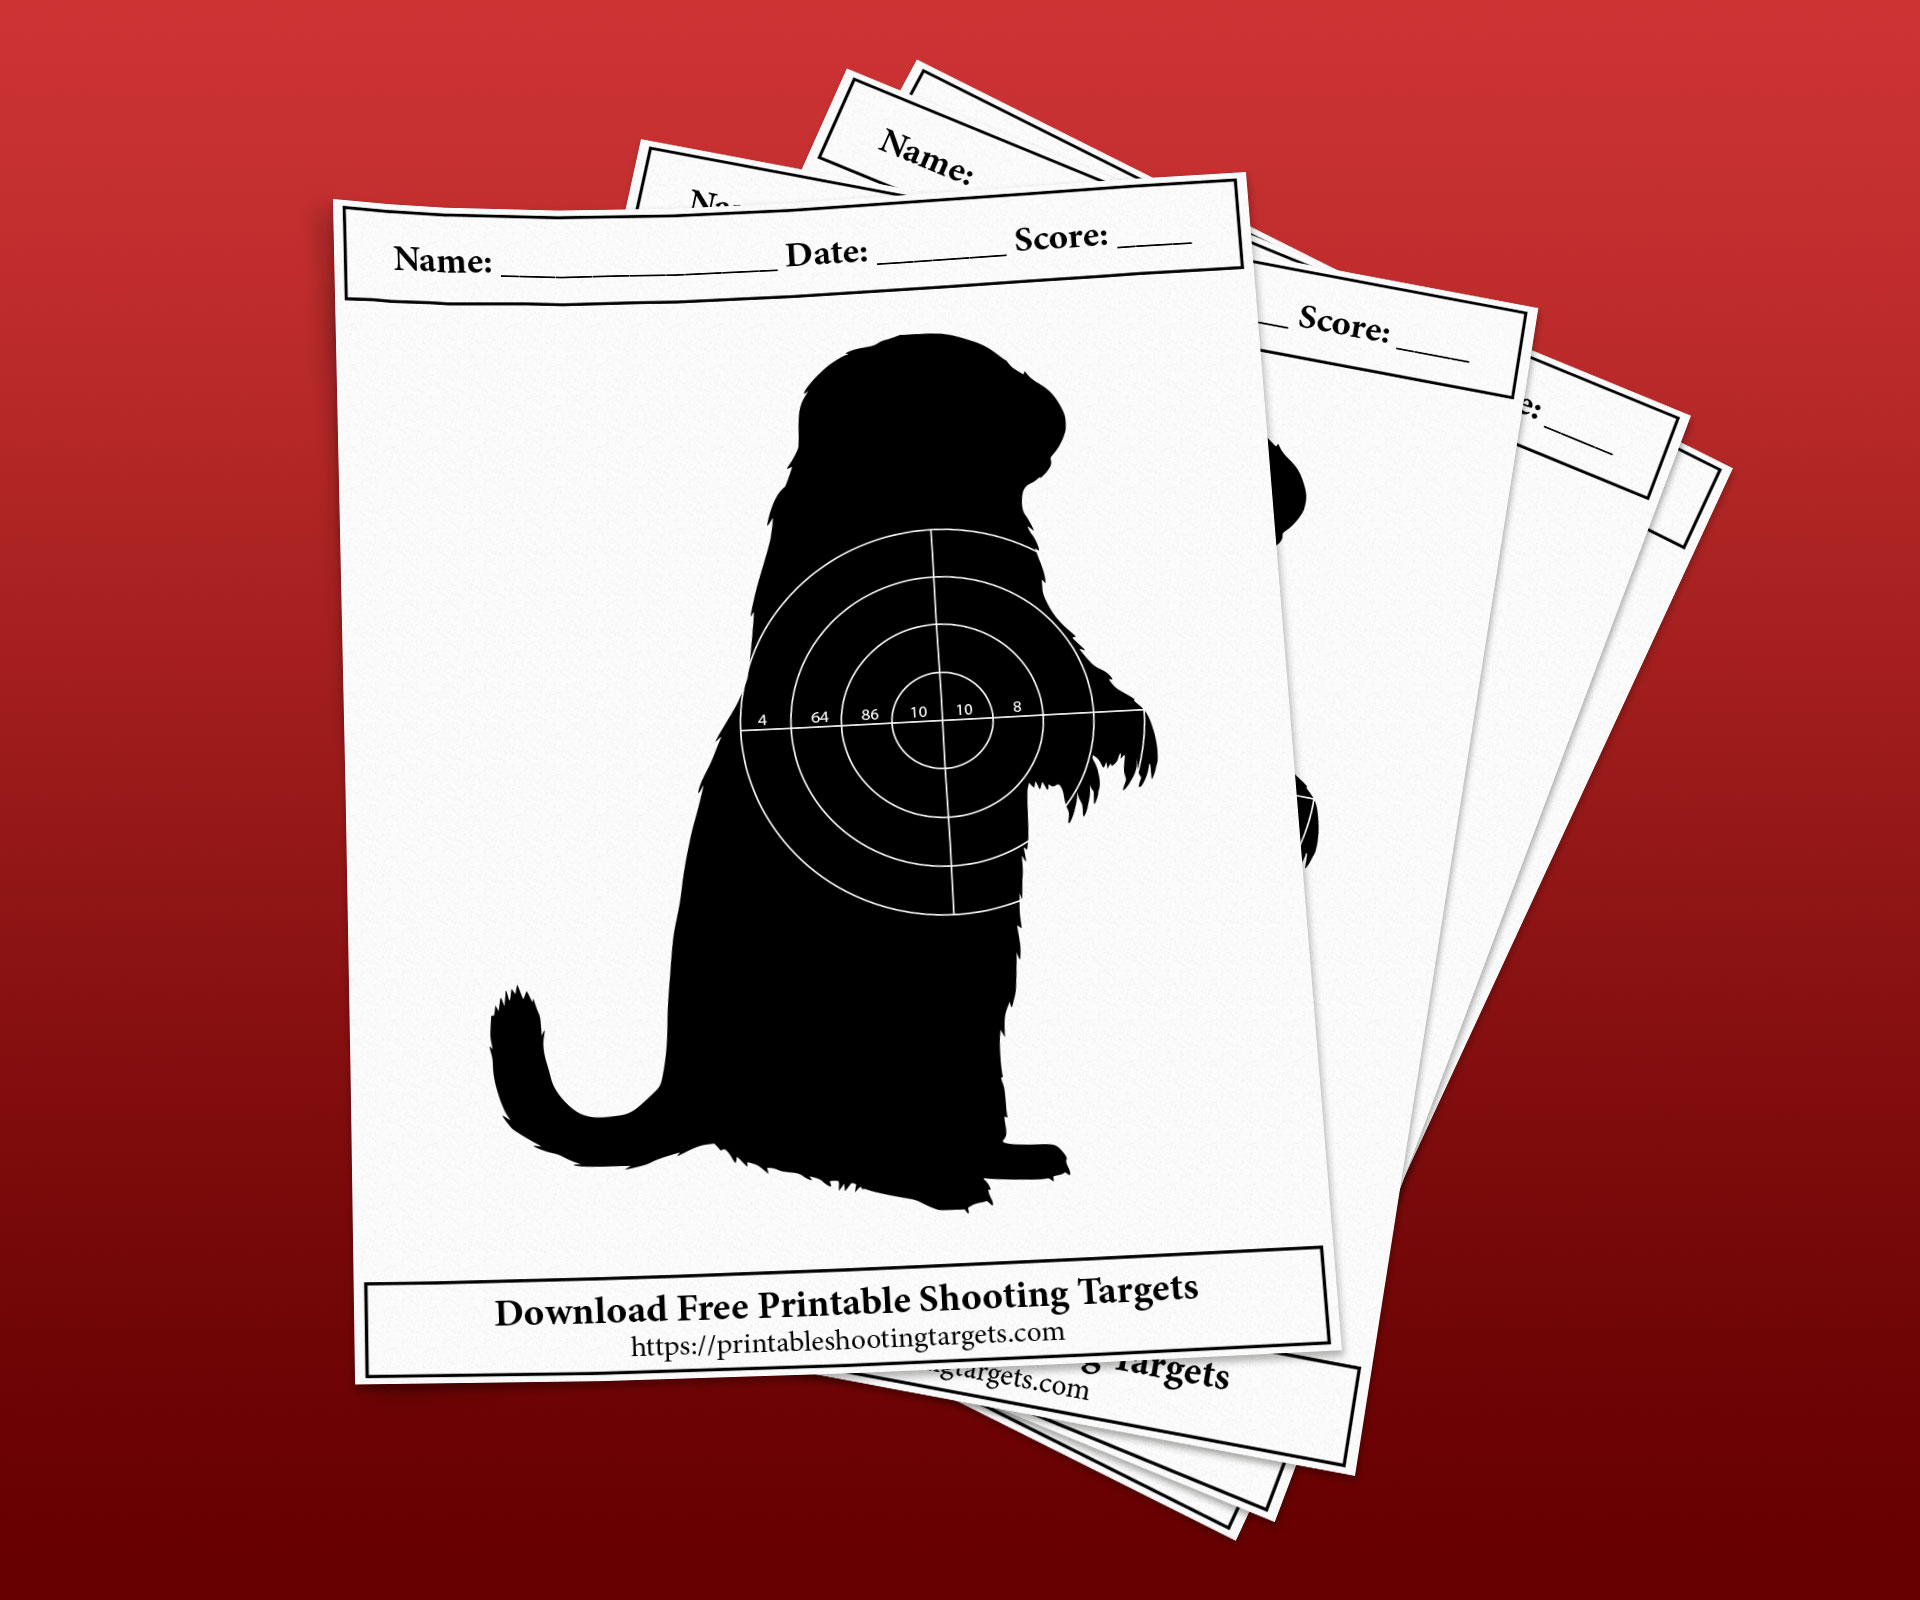 Groundhog-Printable-Shooting-Targets